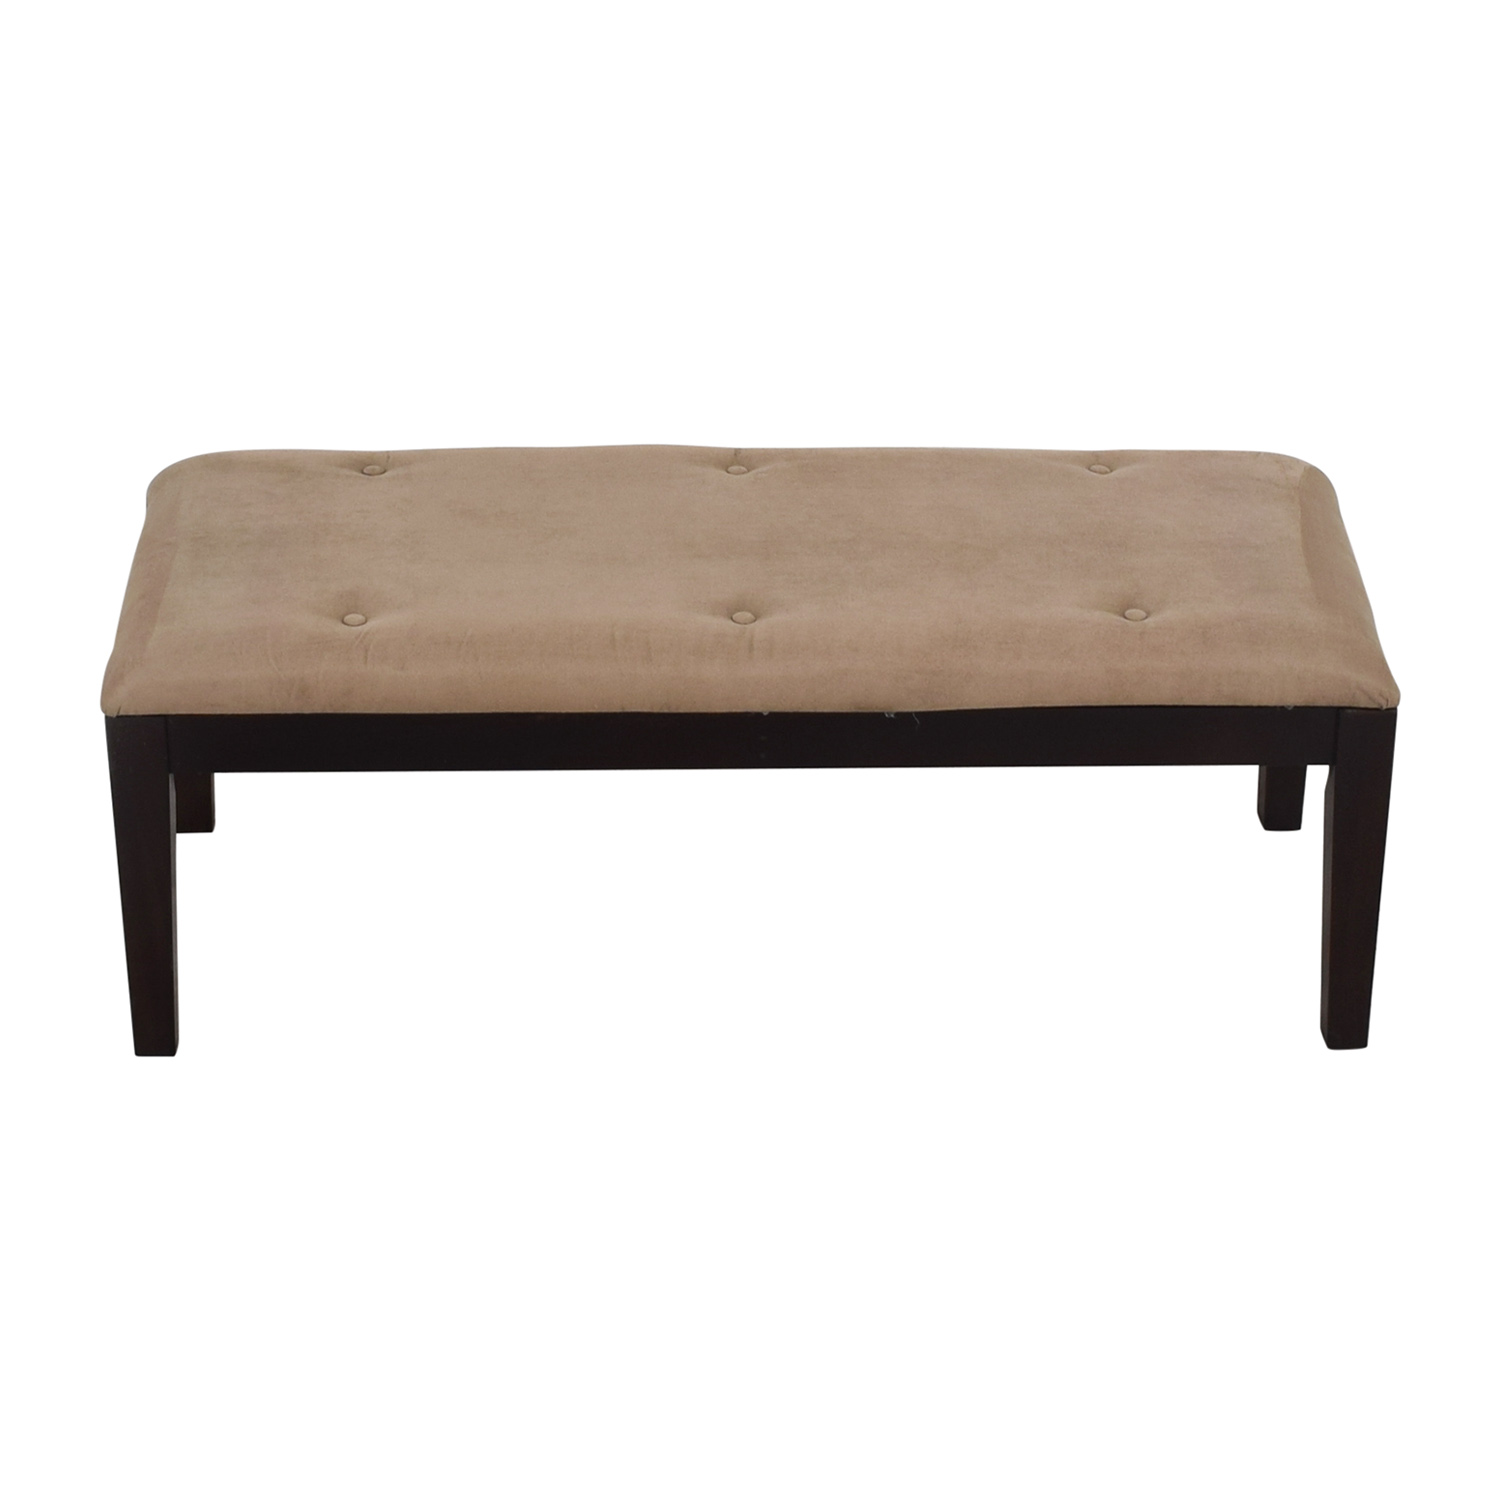 buy Raymour & Flanigan Brown Foot Bench Raymour & Flanigan Chairs